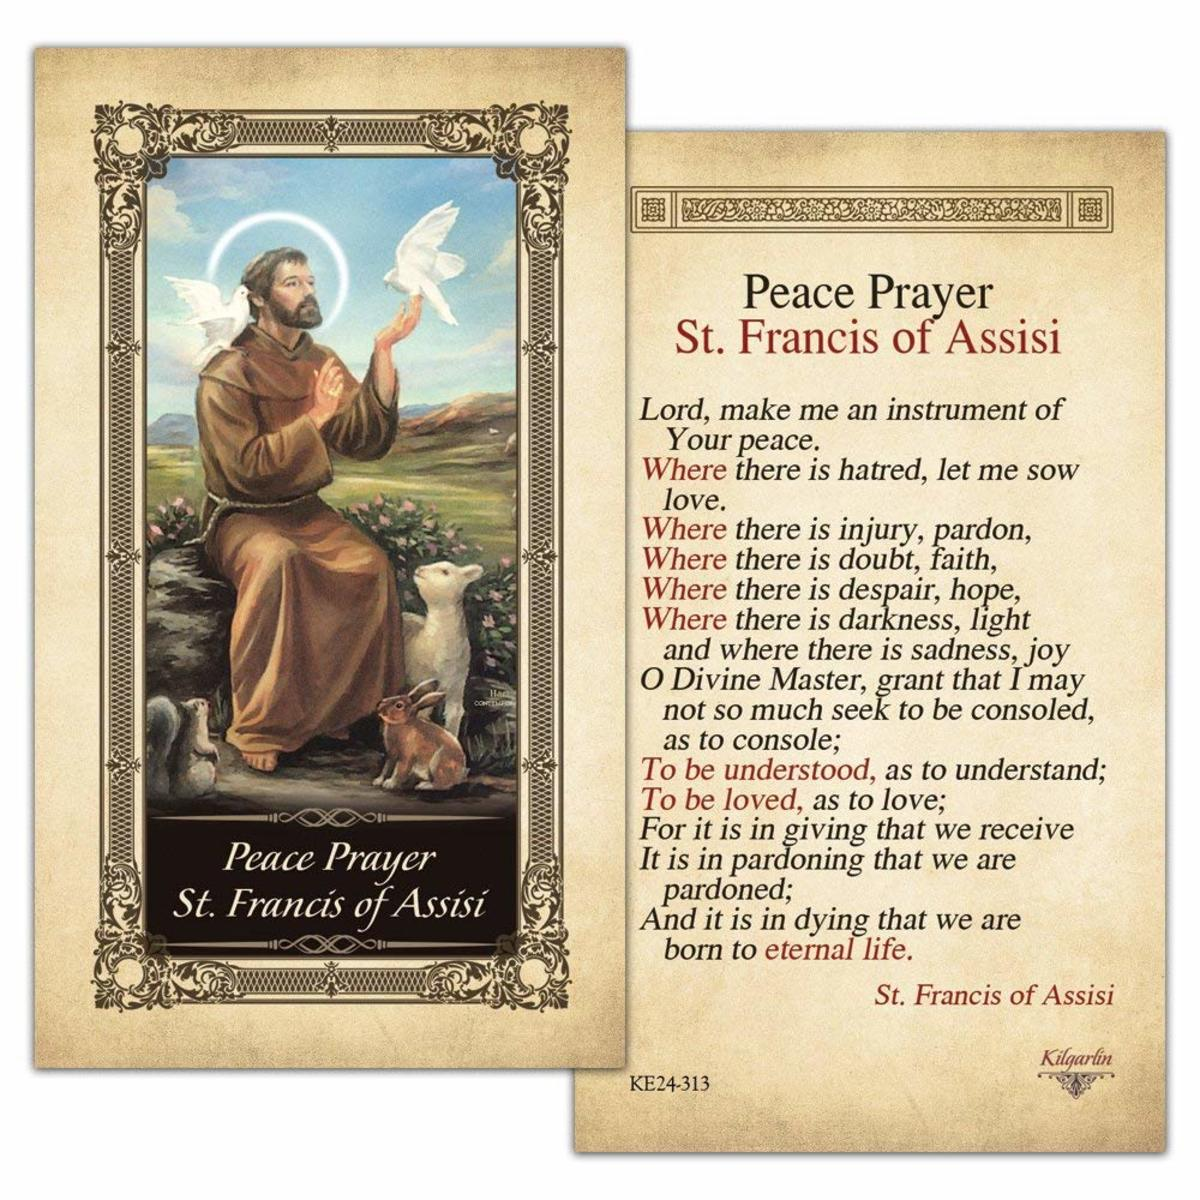 The Significance of the Prayer of Saint Francis